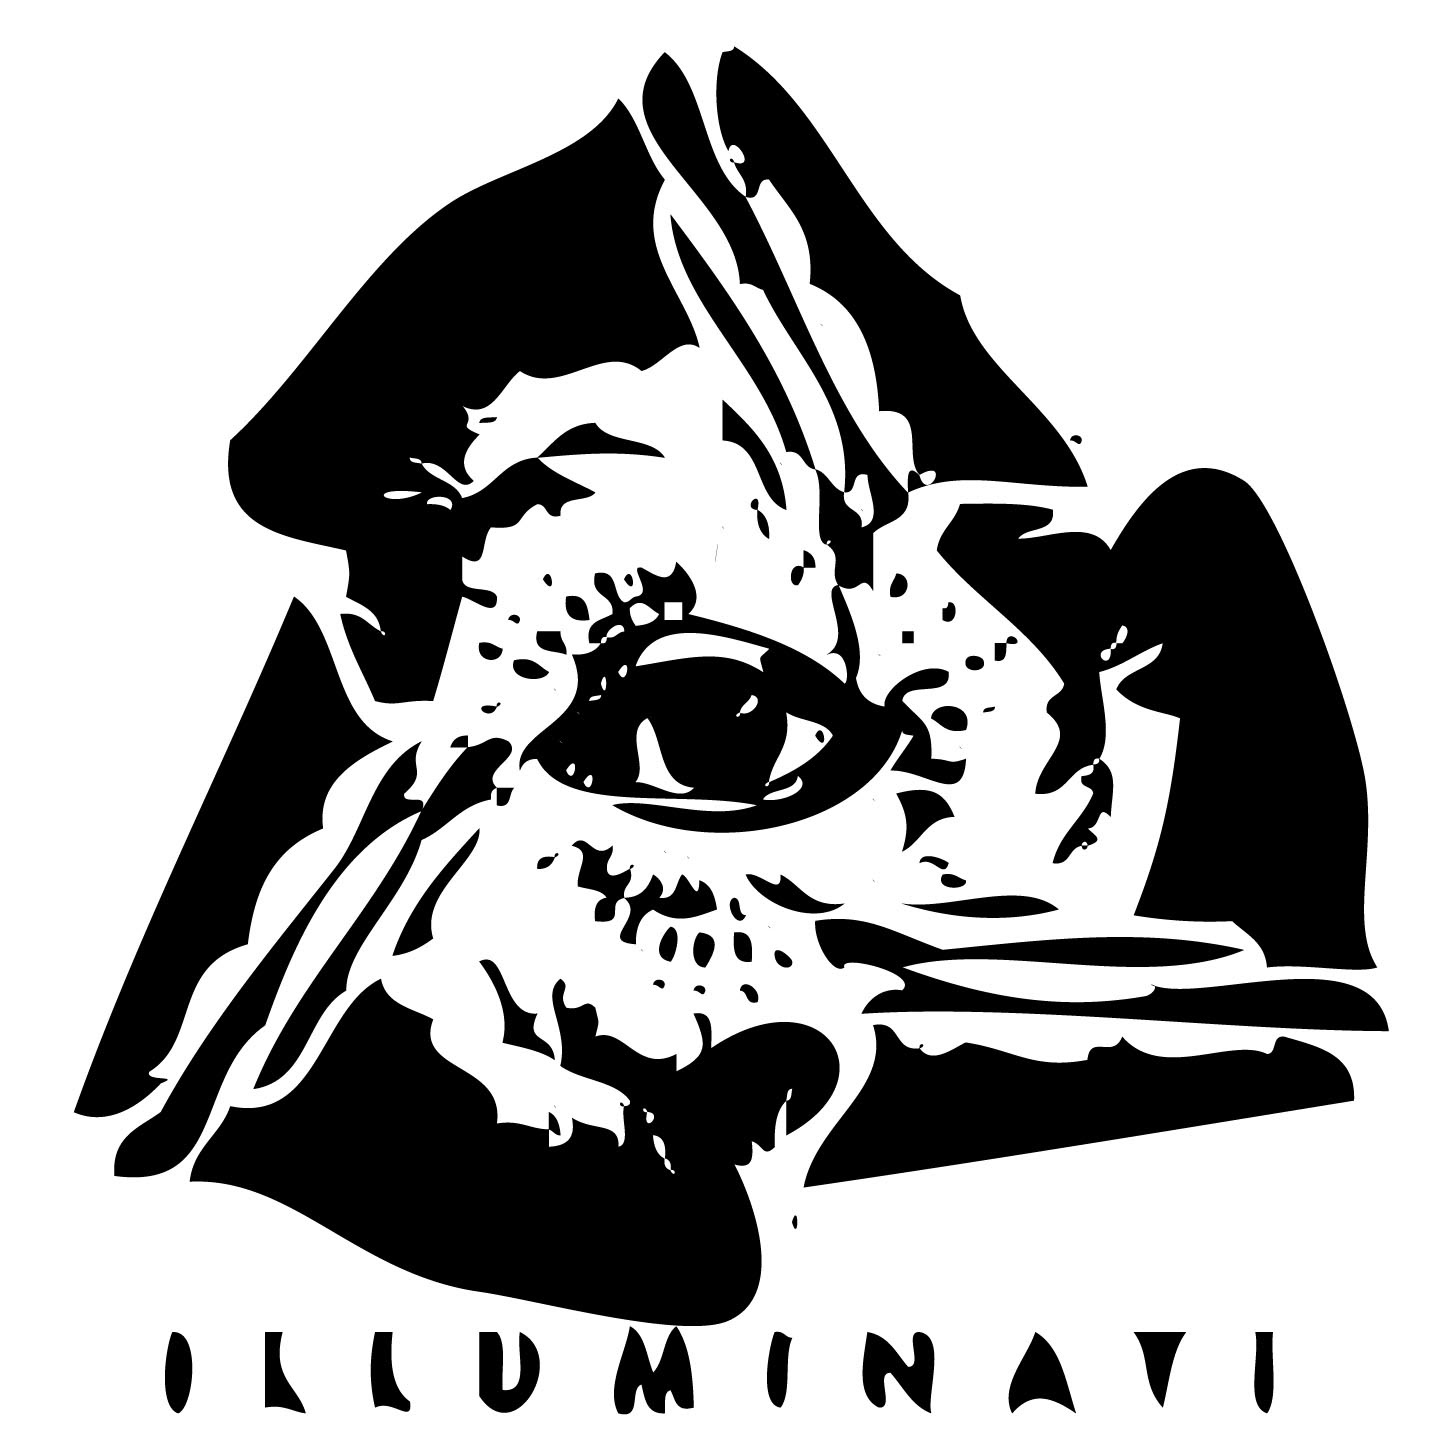 http://ciphermagazine.files.wordpress.com/2010/12/illuminati21.jpg